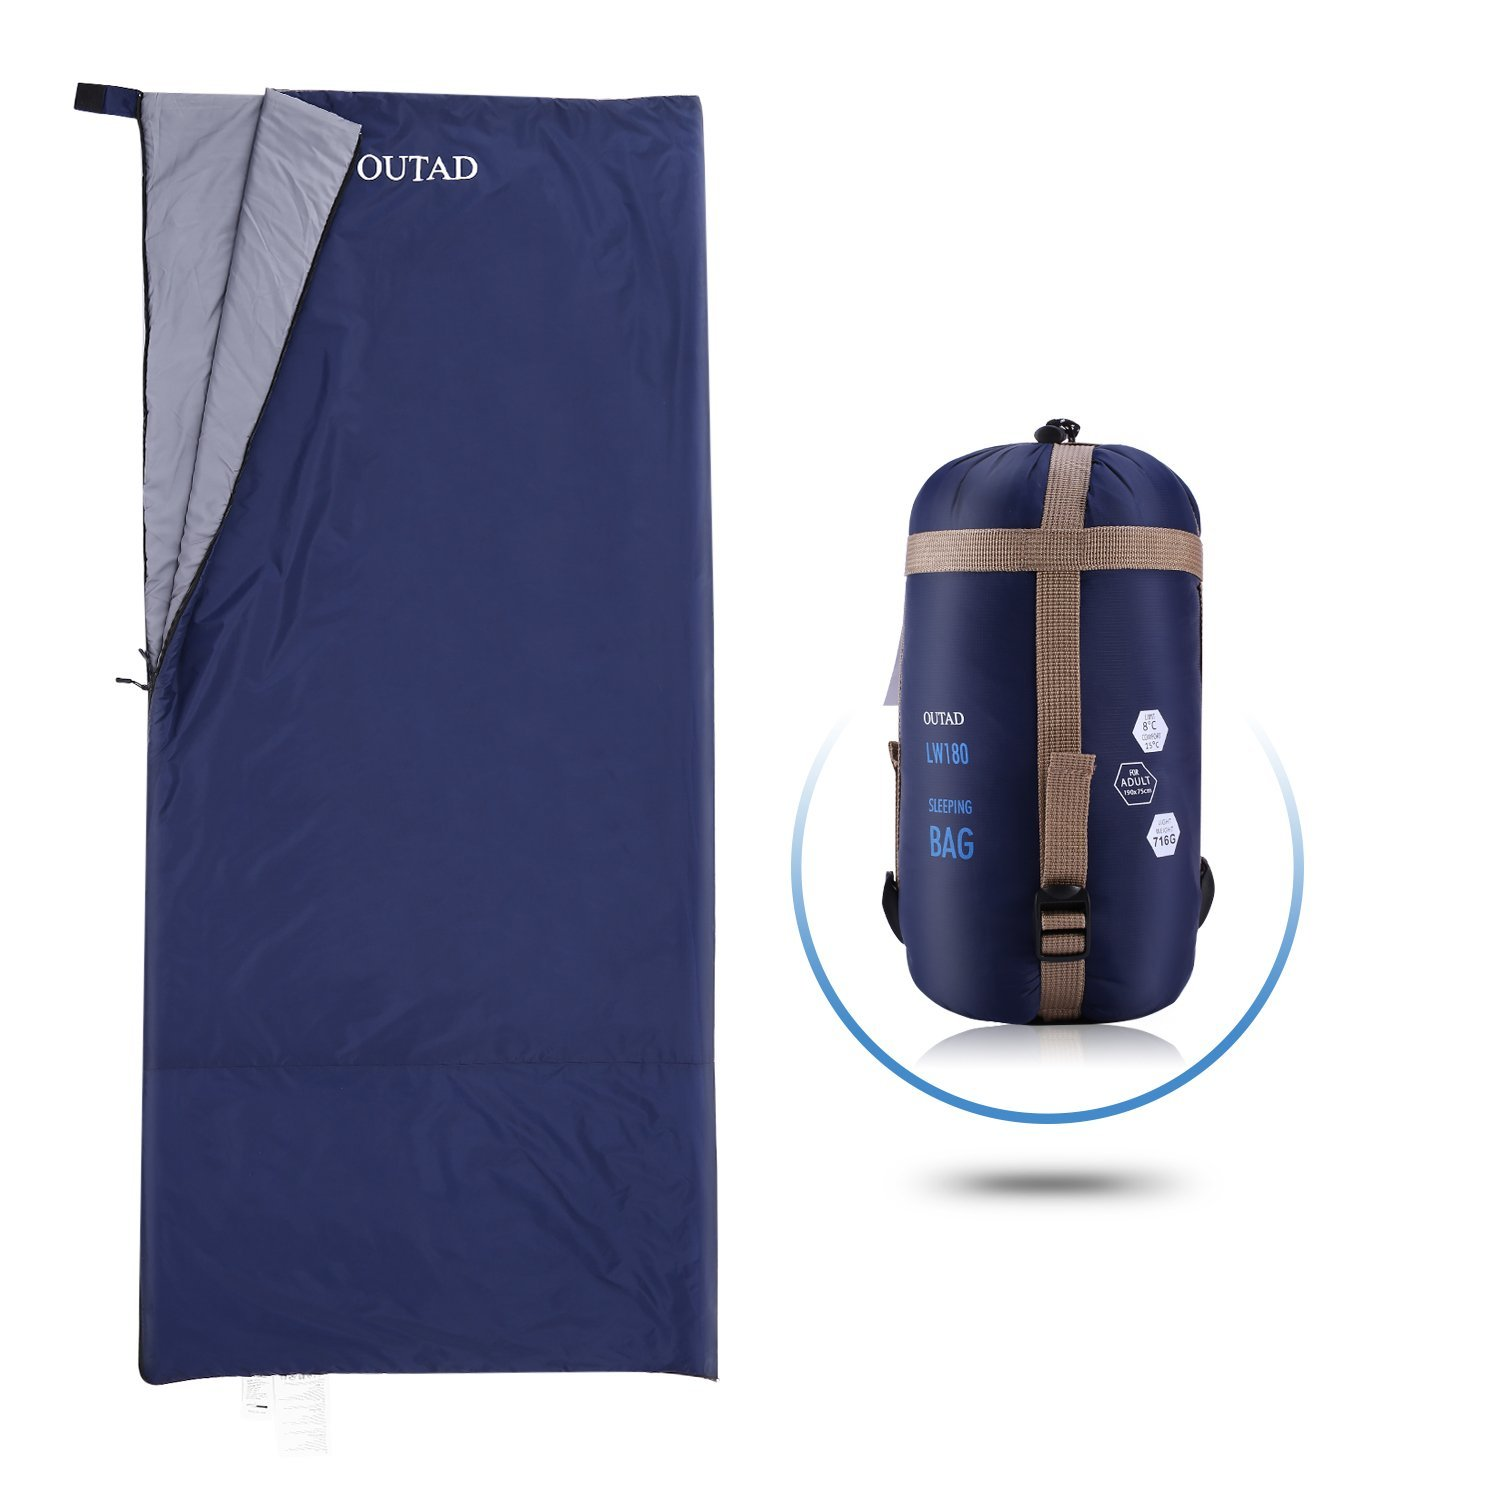 OUTAD Single Sleeping Bag -320D Lightweight Portable, Waterproof, Comfortable Envelope Sleeping Bag With Compression Sack -Great For 3 Season Traveling, Camping, Hiking (61.5 x 25.5inch)